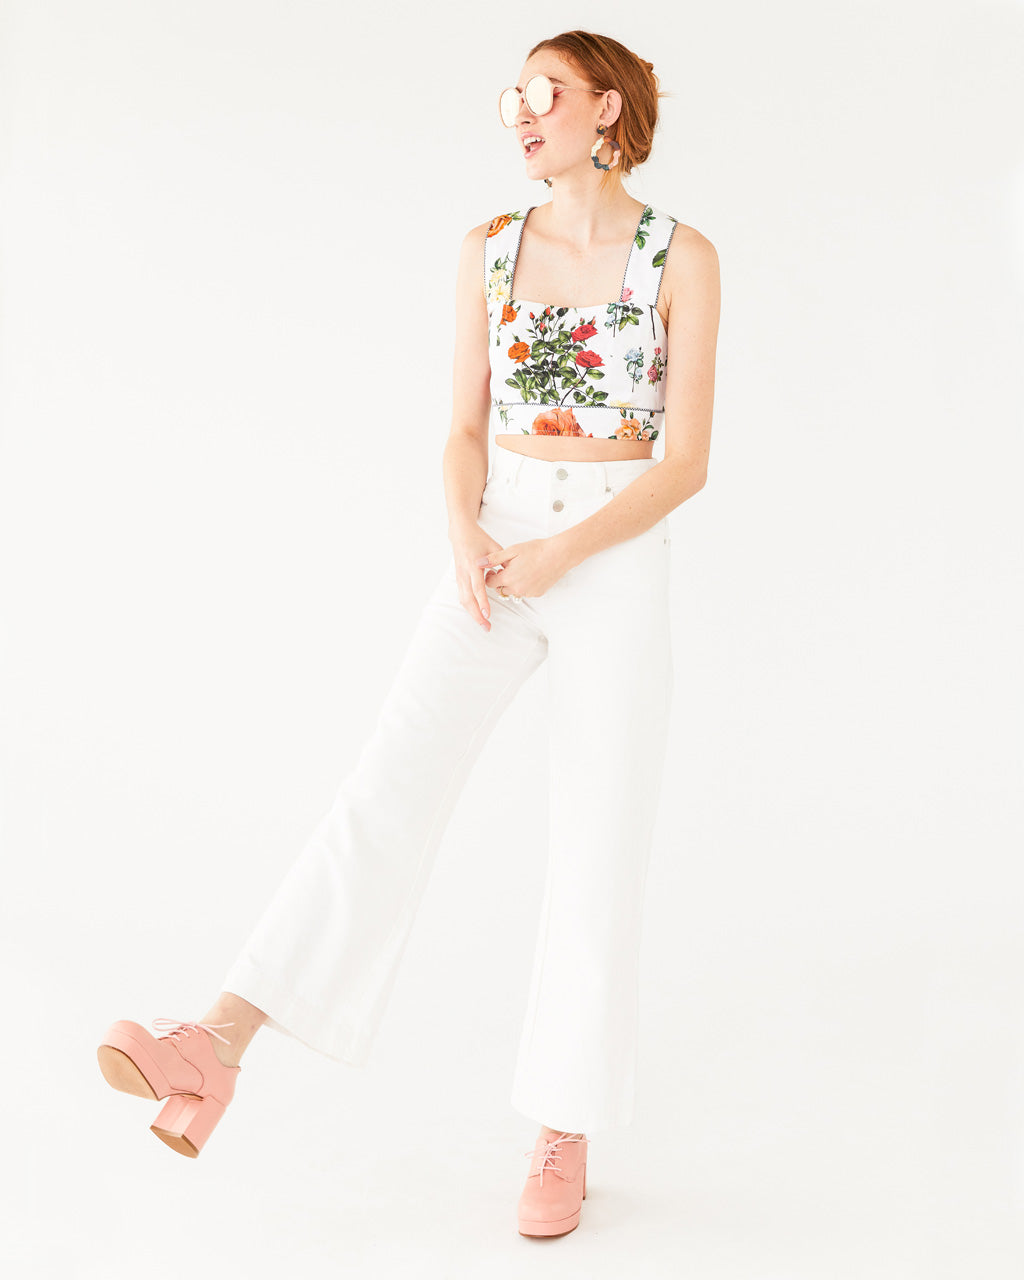 vintage white wide leg ankle jeans paired with a pink heeled shoe and a white floral top shown on model